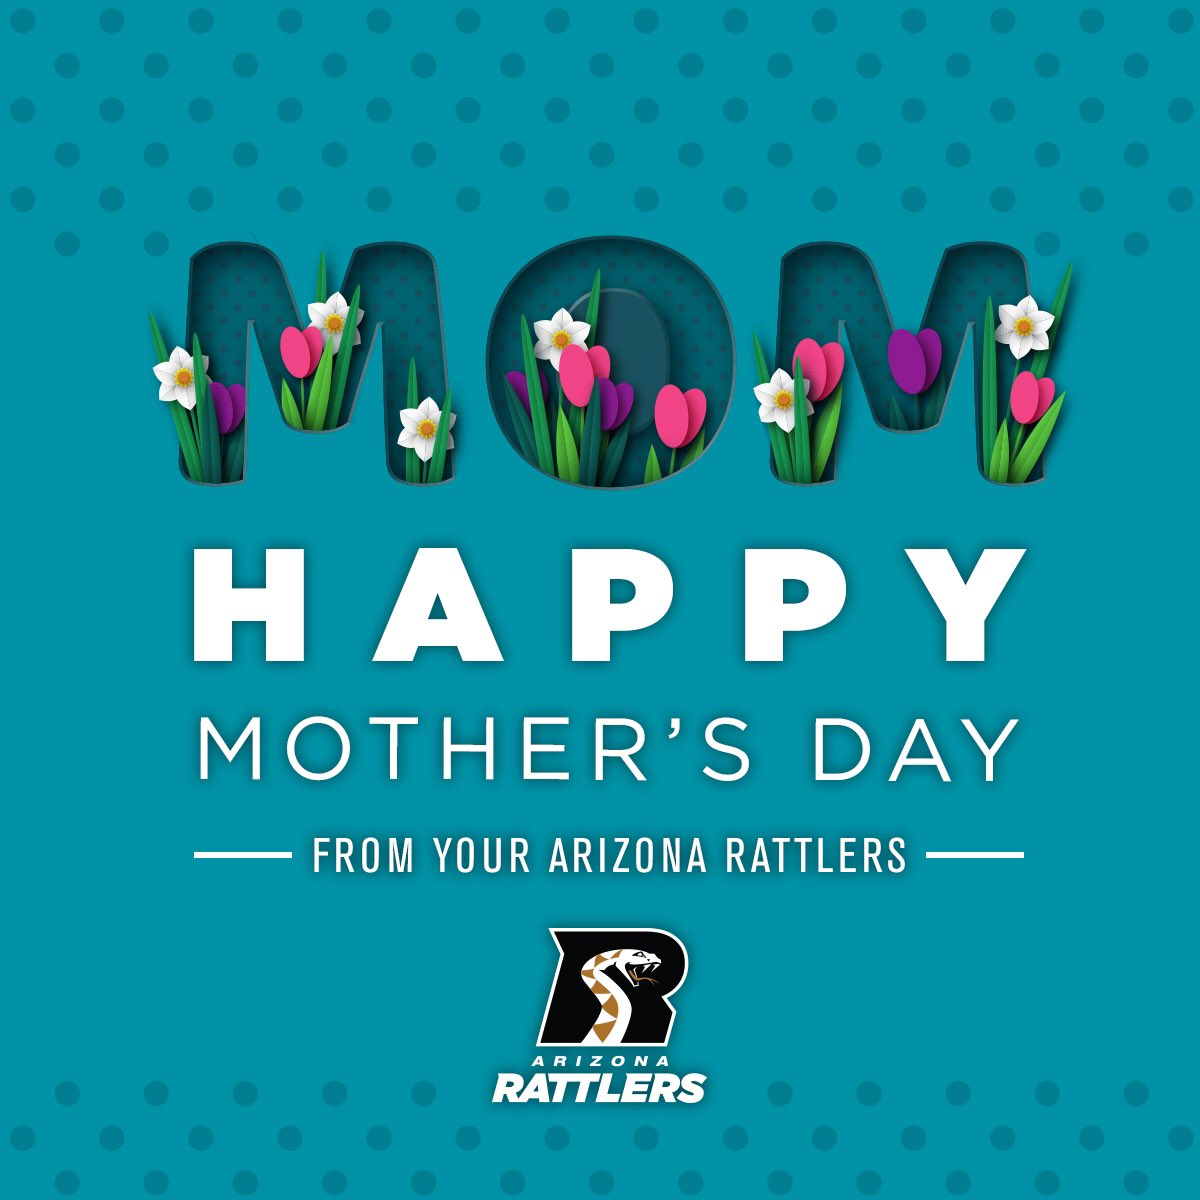 #HappyMothersDay to all the Rattler Moms out there! #StrikeAsOne https://t.co/FtUofQ56oR